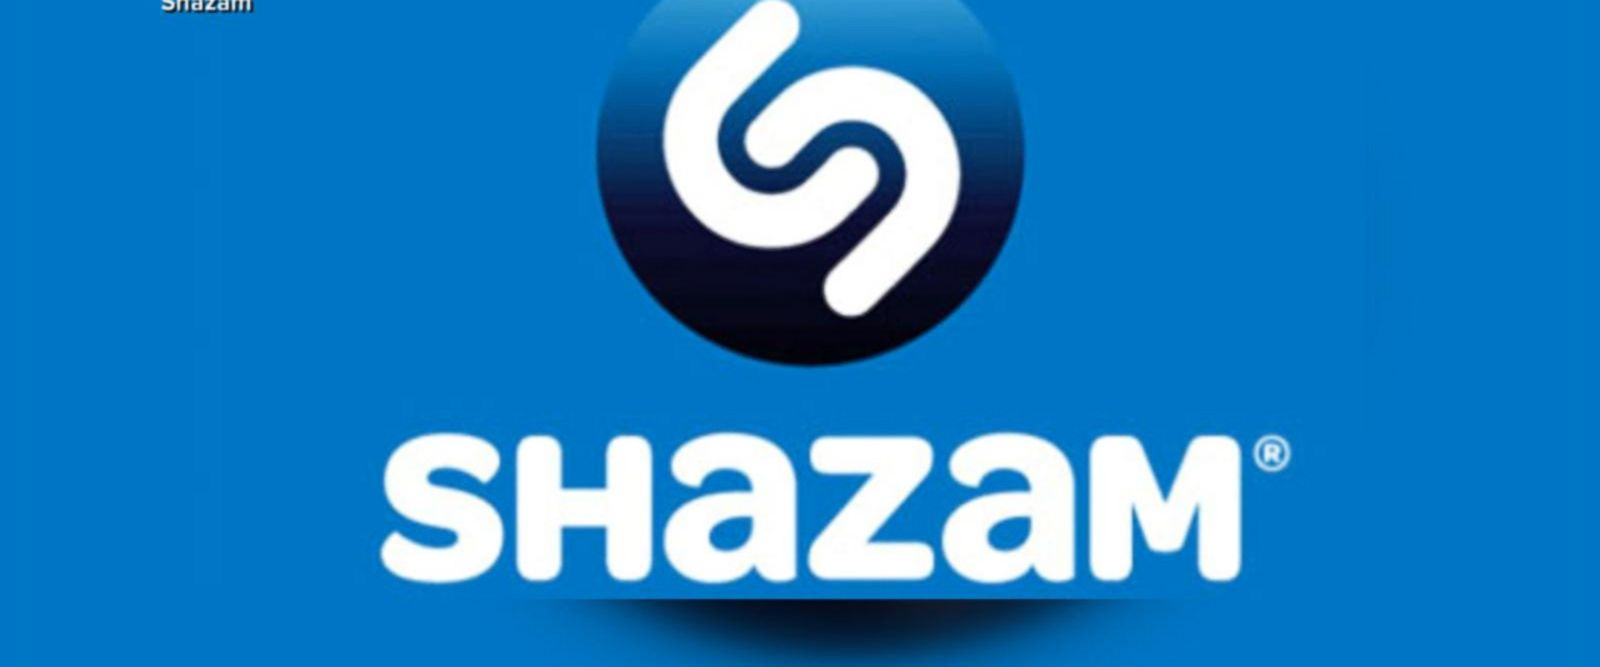 VIDEO: Apple takes over the music recognition service Shazam